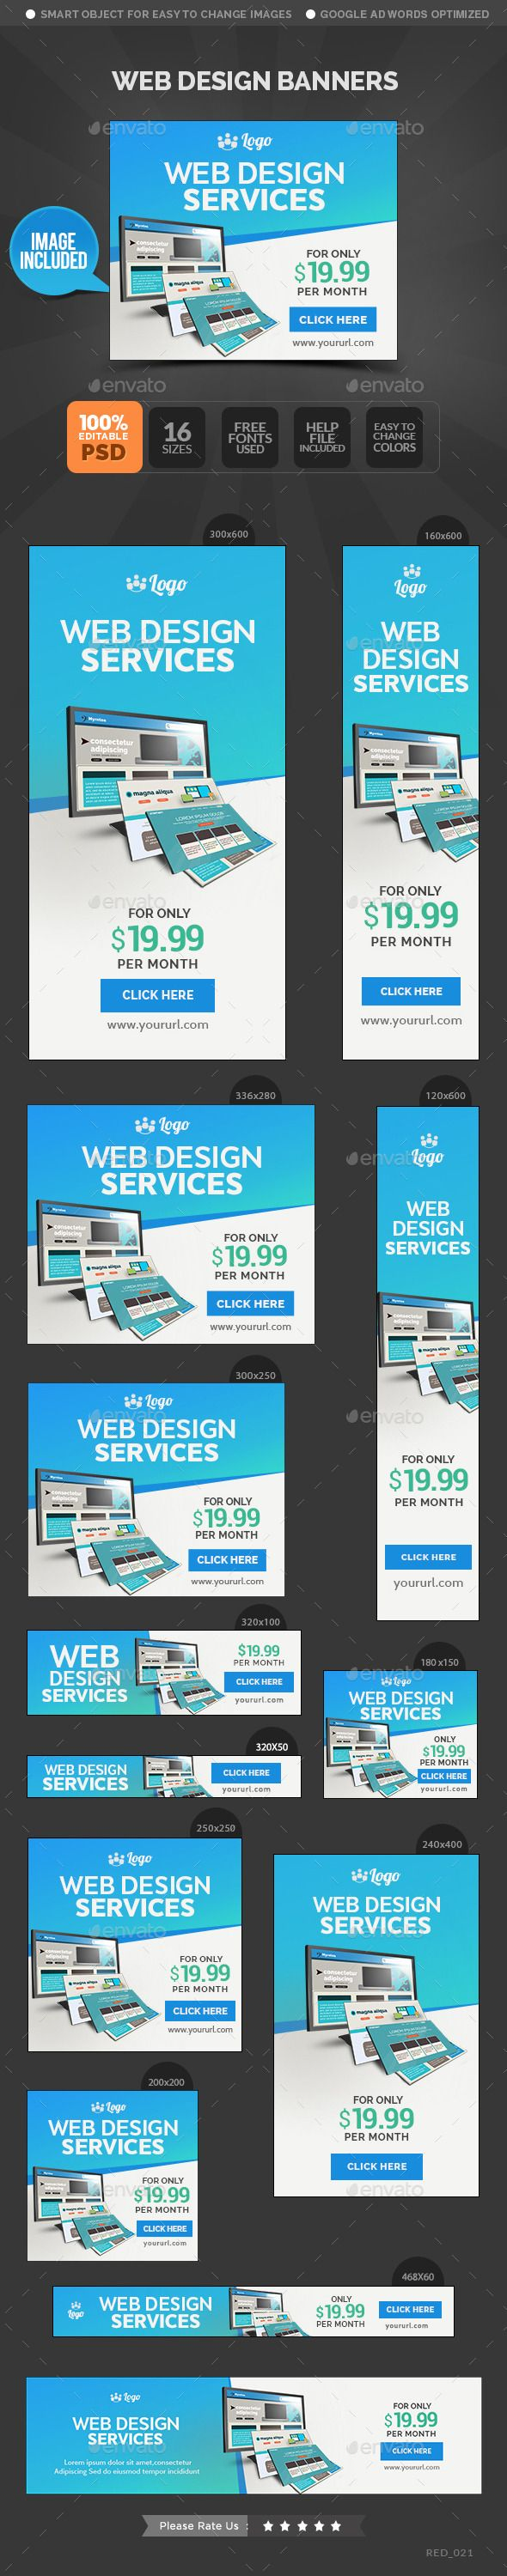 Web Design Banners Template PSD #banner #webbanner #design Download: http://graphicriver.net/item/web-design-banners/10654628?ref=ksioks